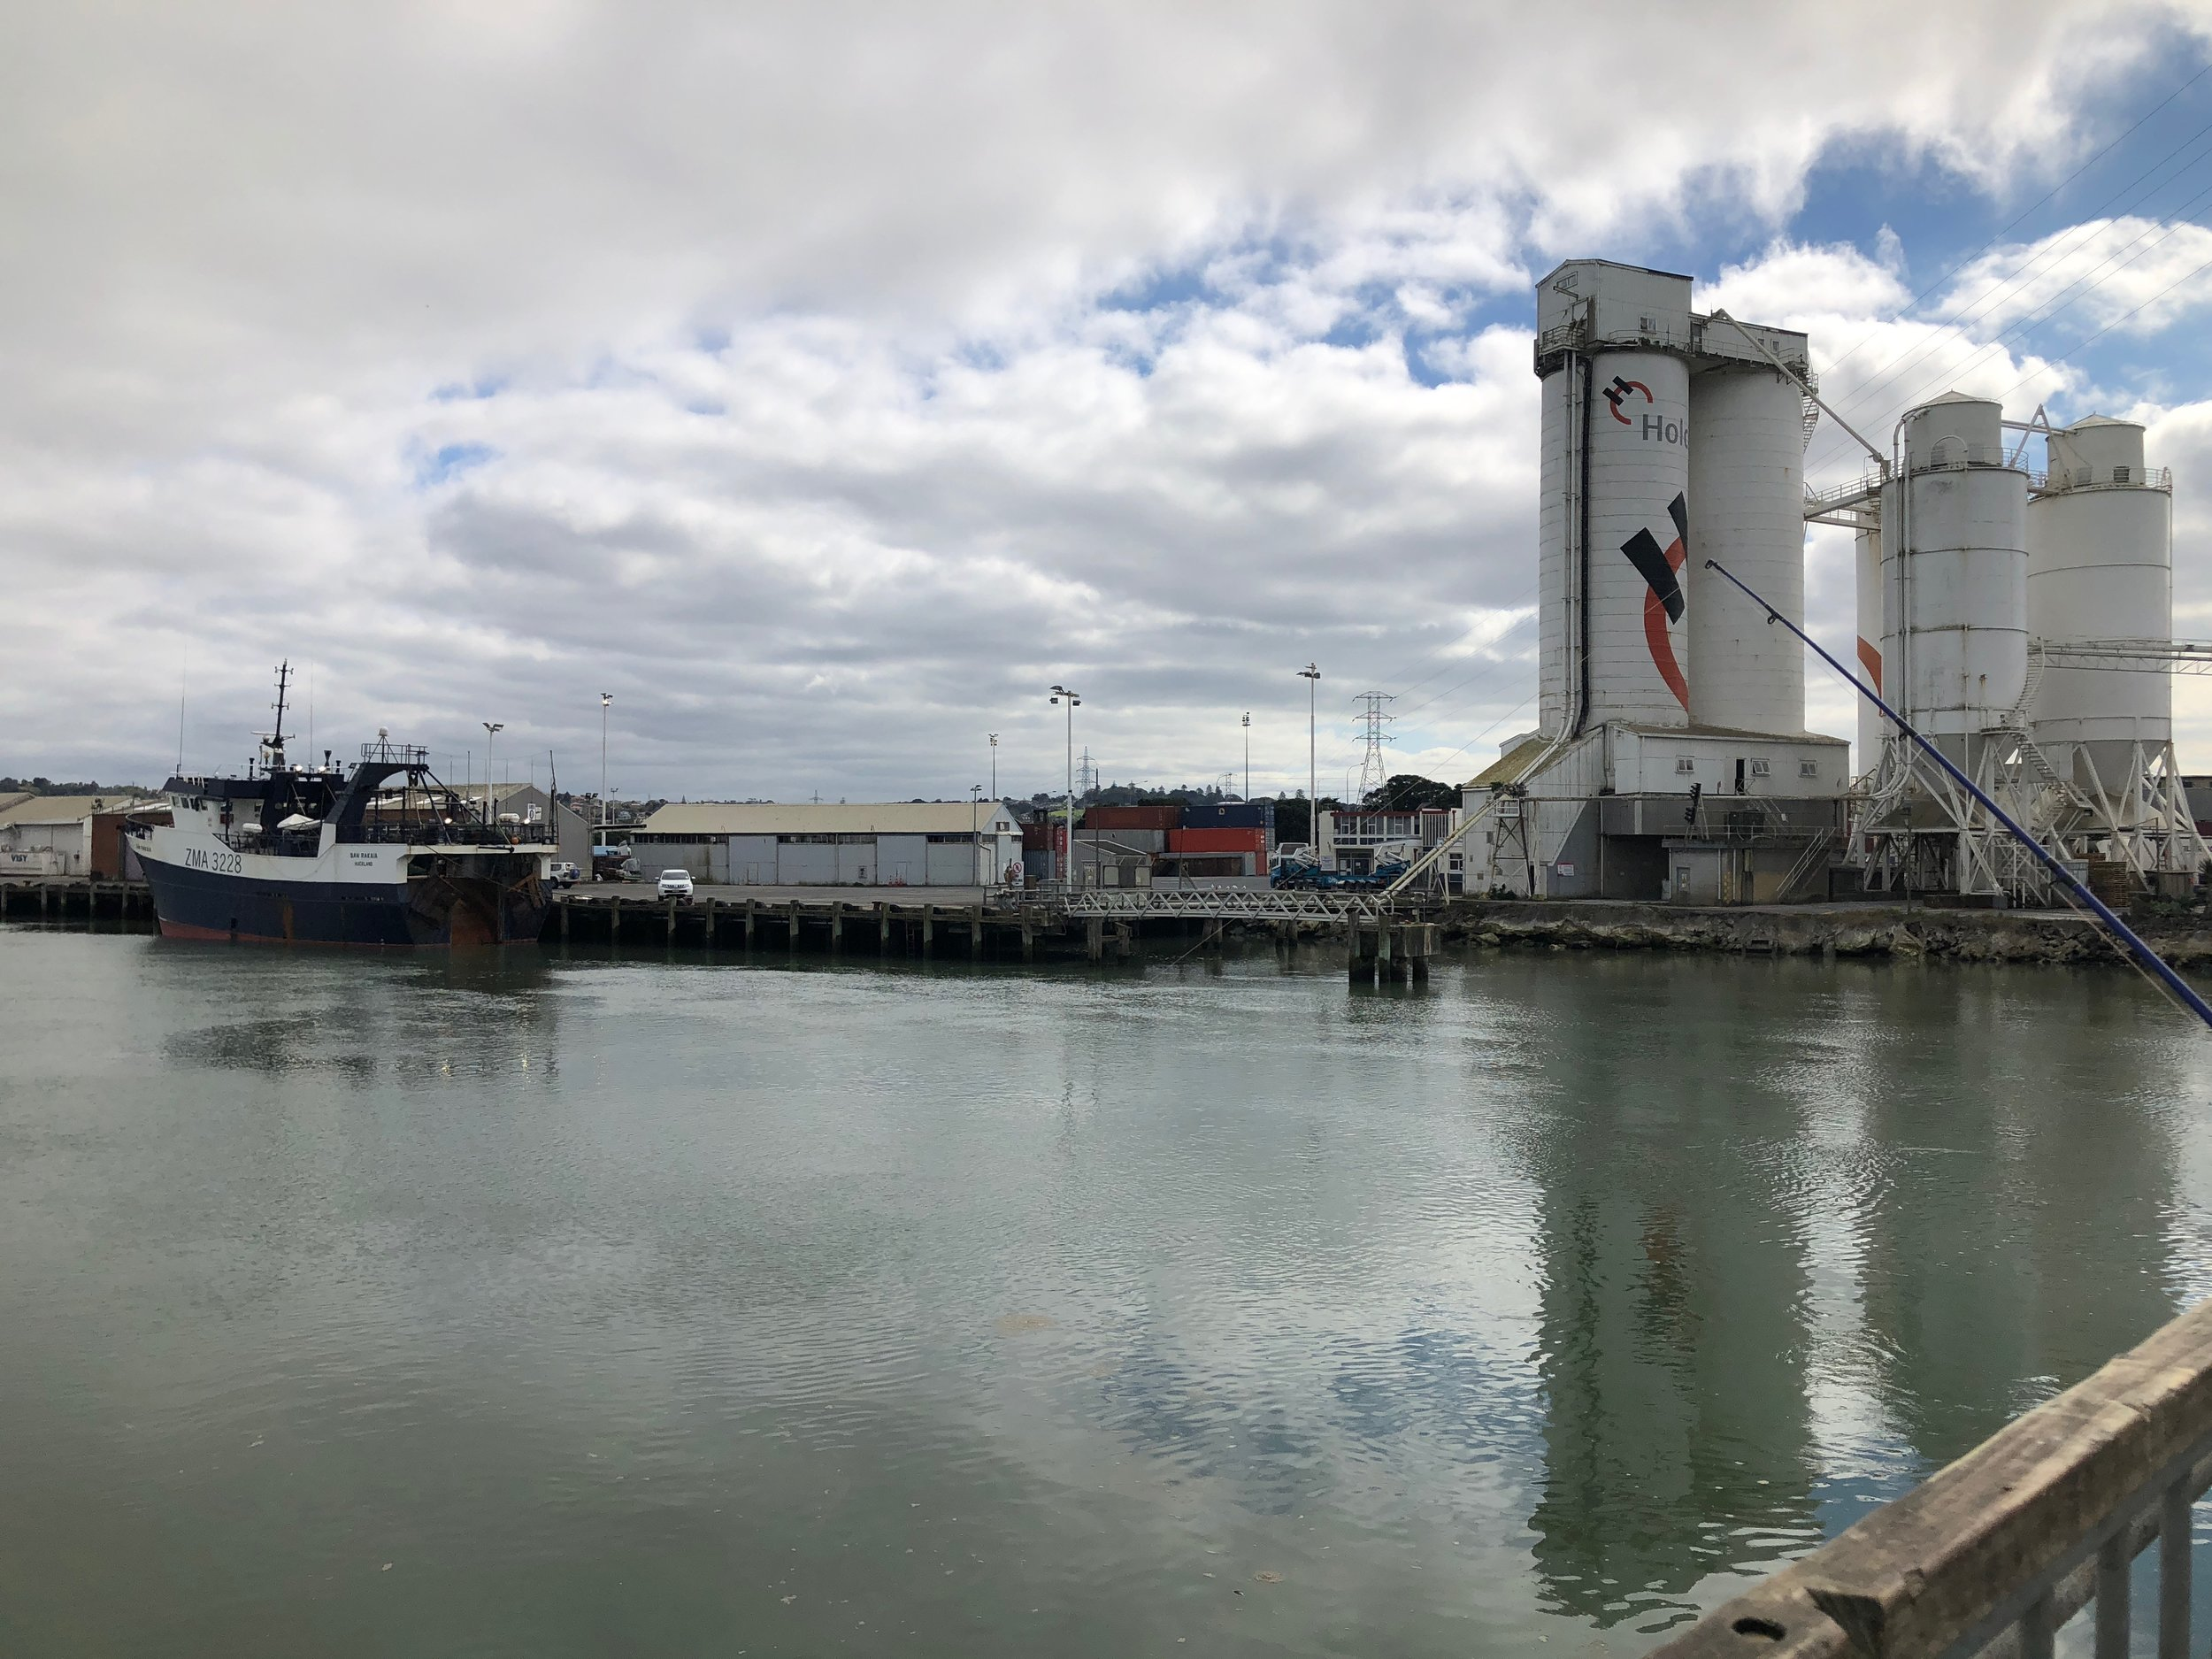 Onehunga Port is becoming too shallow for modern shipping. Manukau Habour has been handicapped for years by a sandbar across the harbour mouth which limits the size of ships that can use it